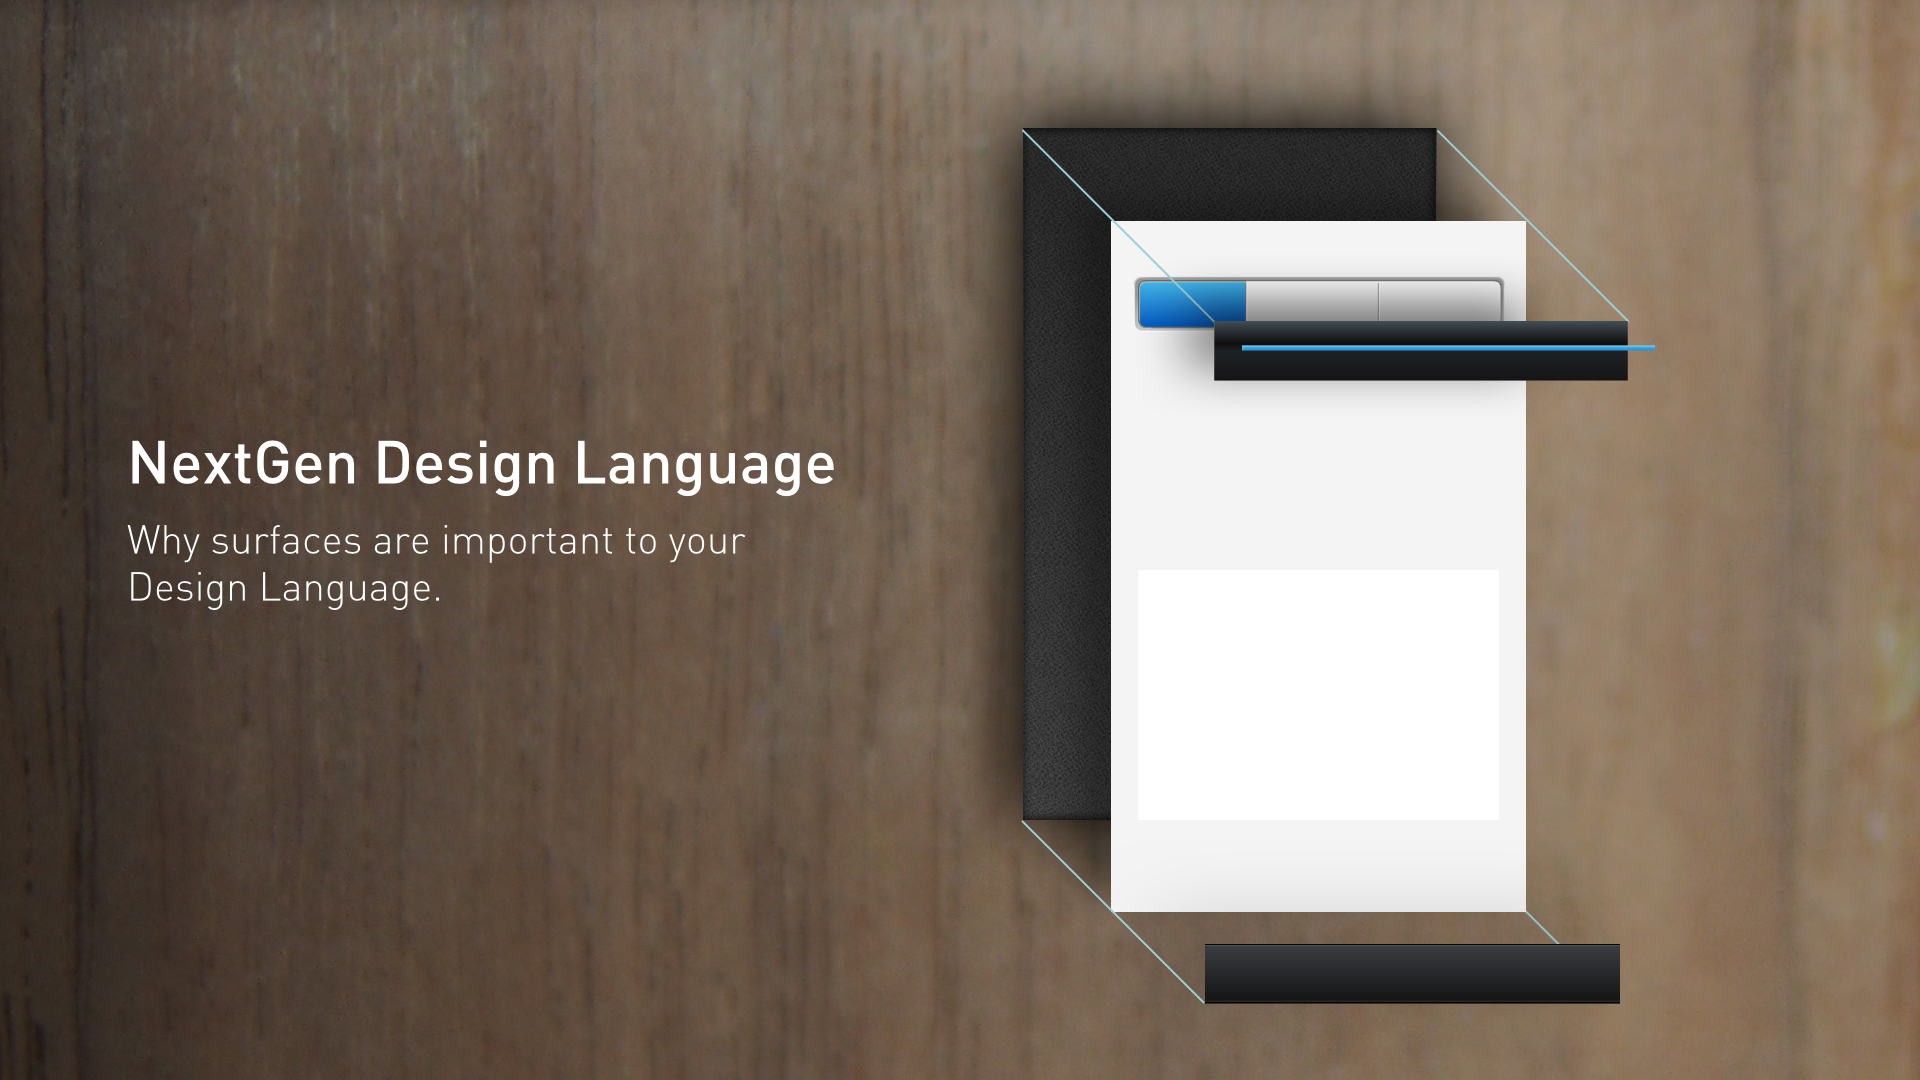 NextGen Design Language, by Sanjiv Sirpal